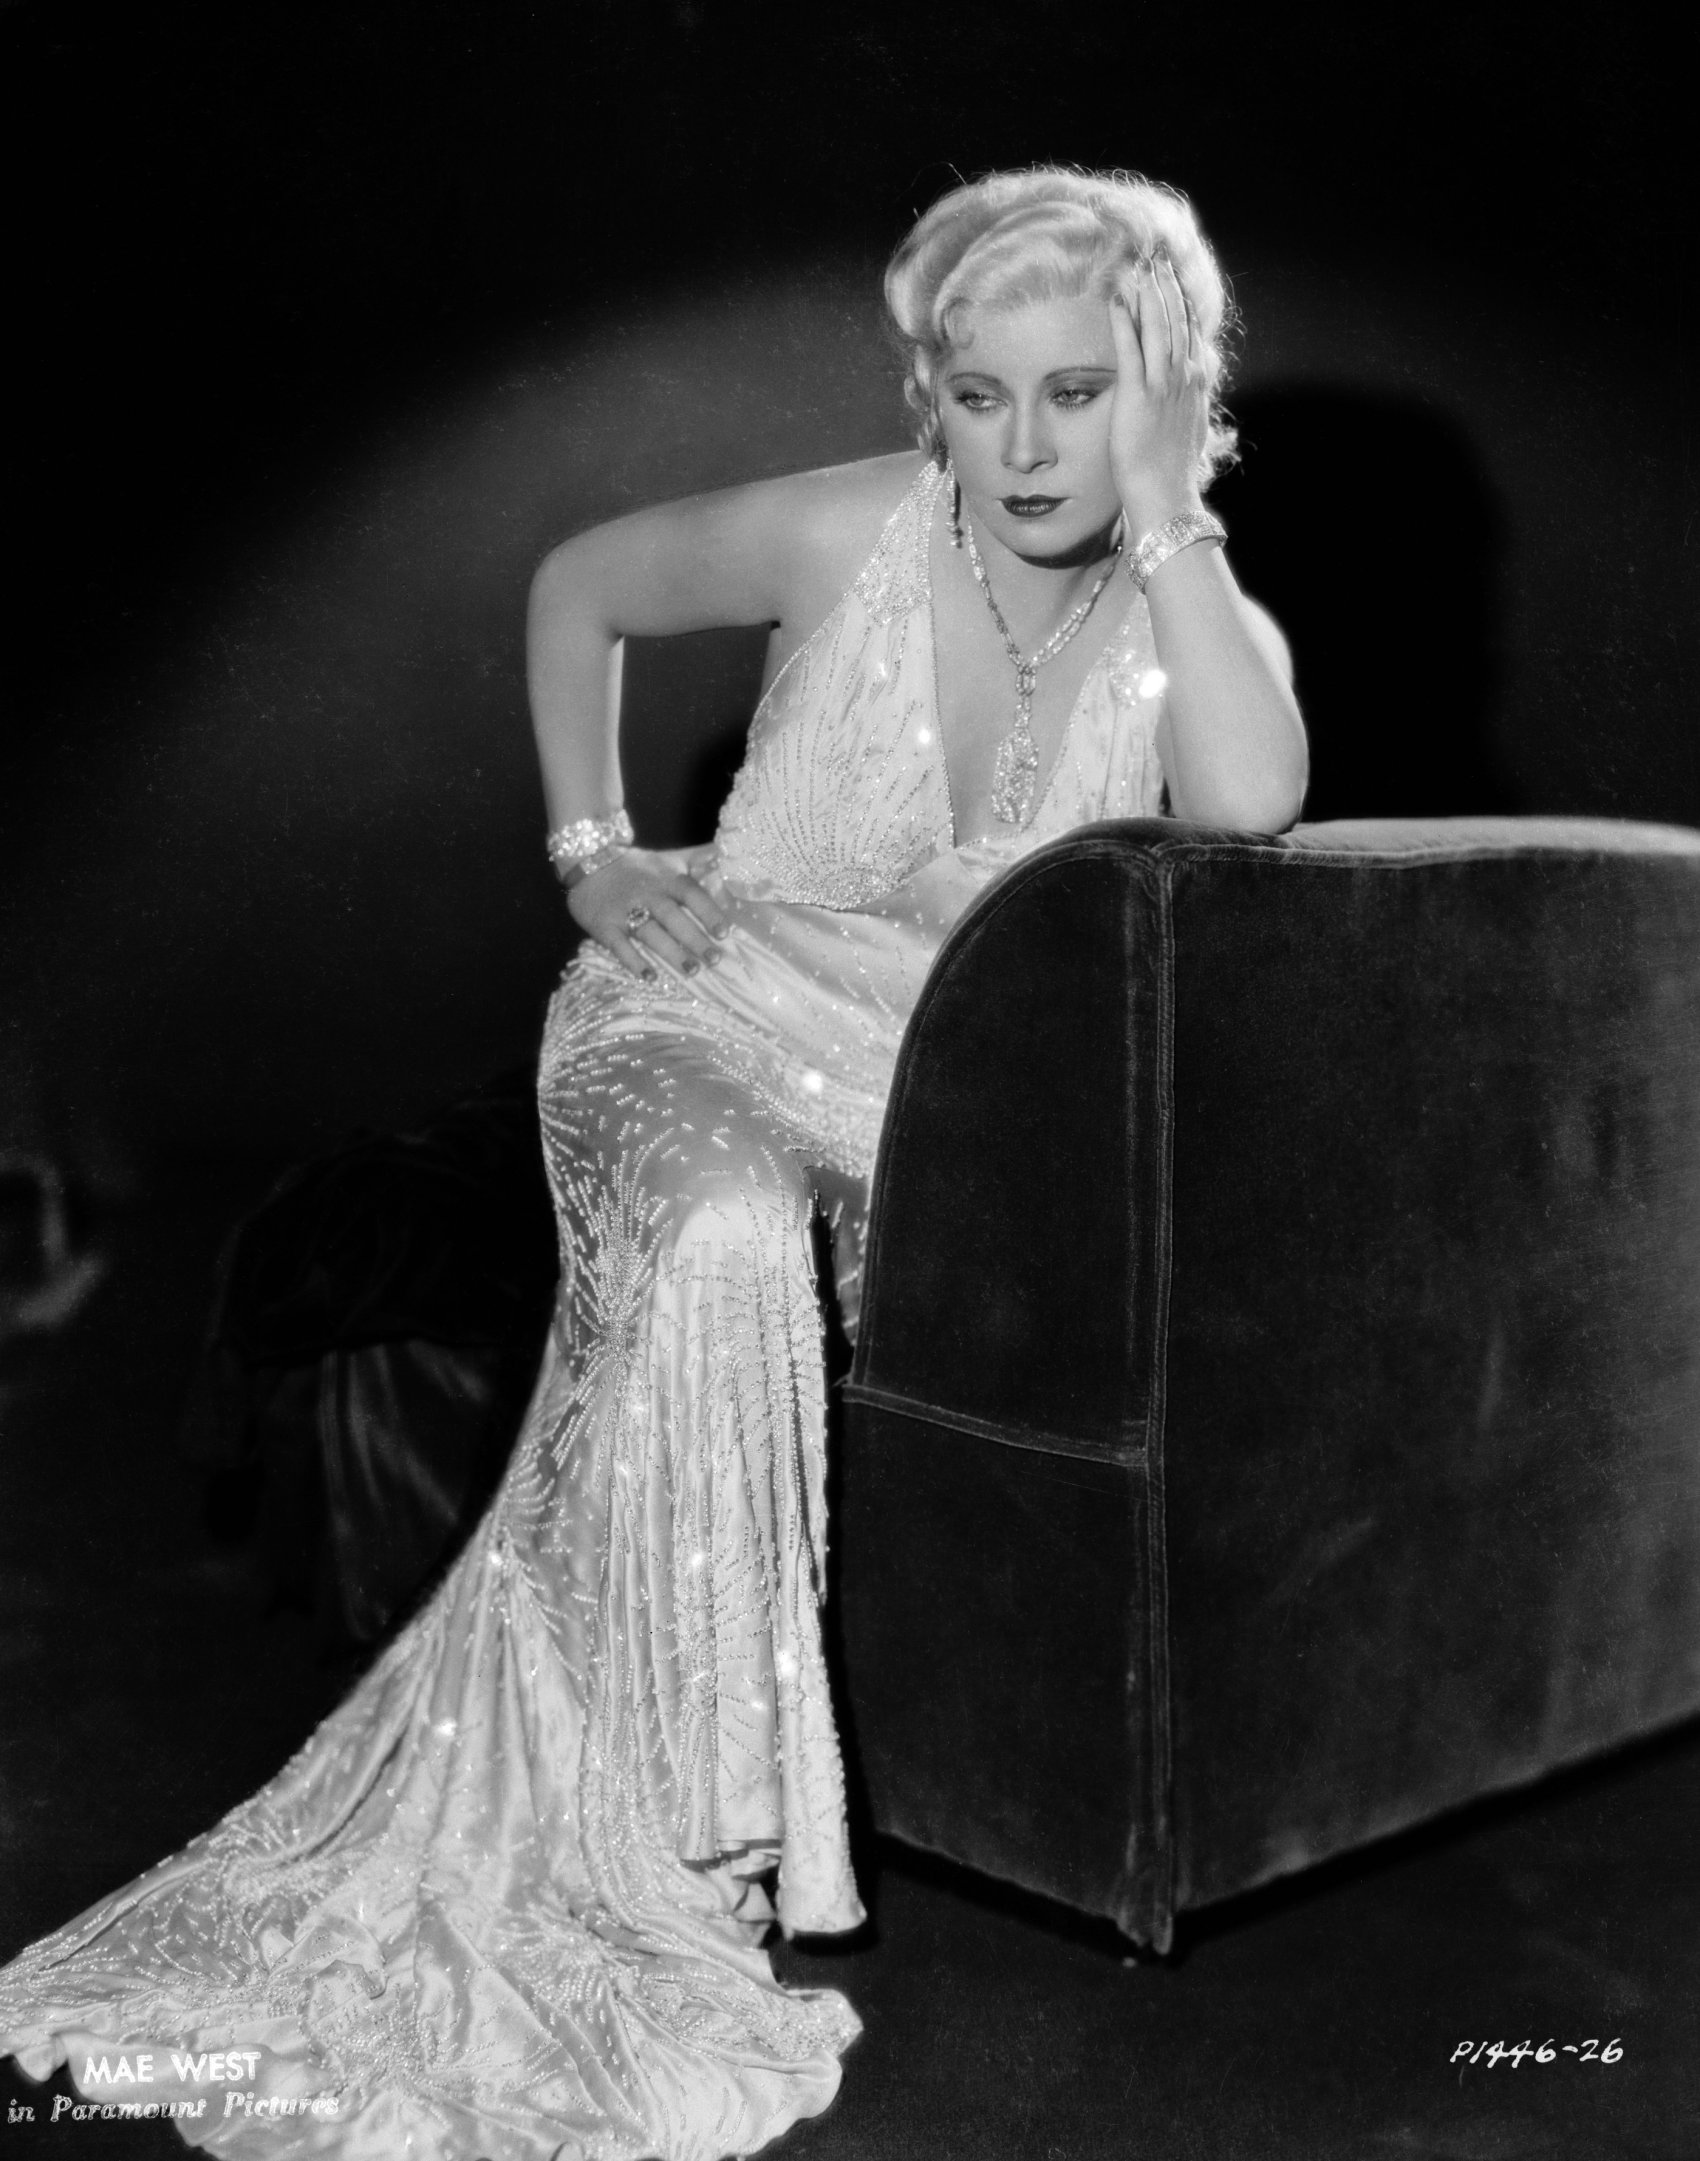 Styling 54B Mae West inspired shoot on Pinterest | Mae West, Google and Gemma Ward